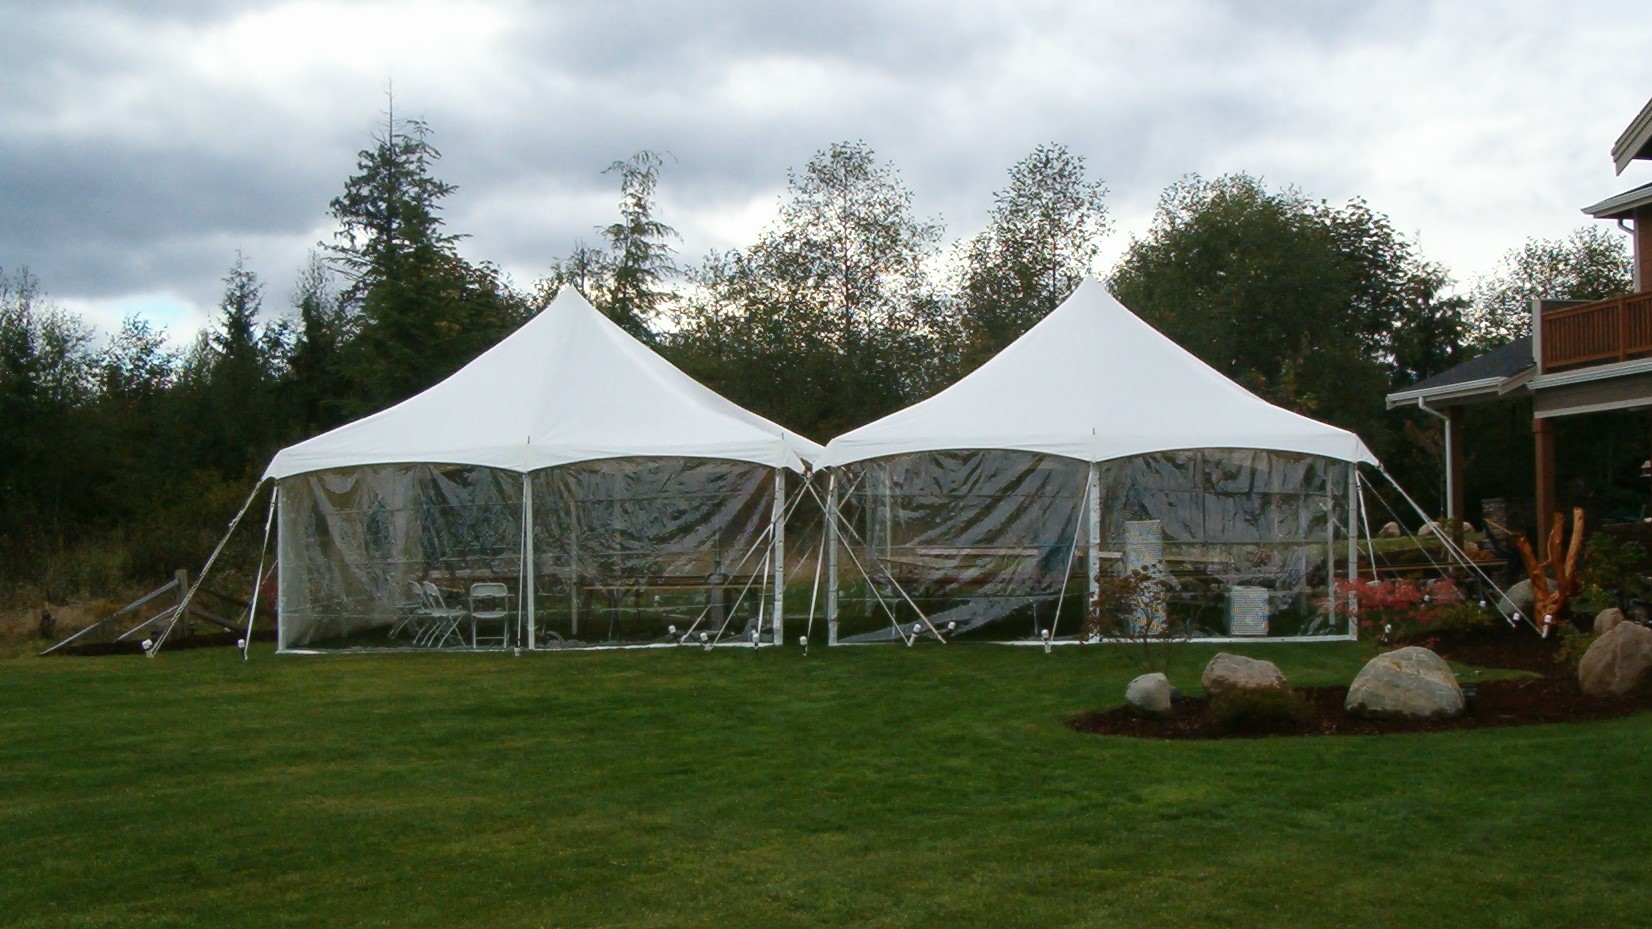 20x epic tent with clear sidewall